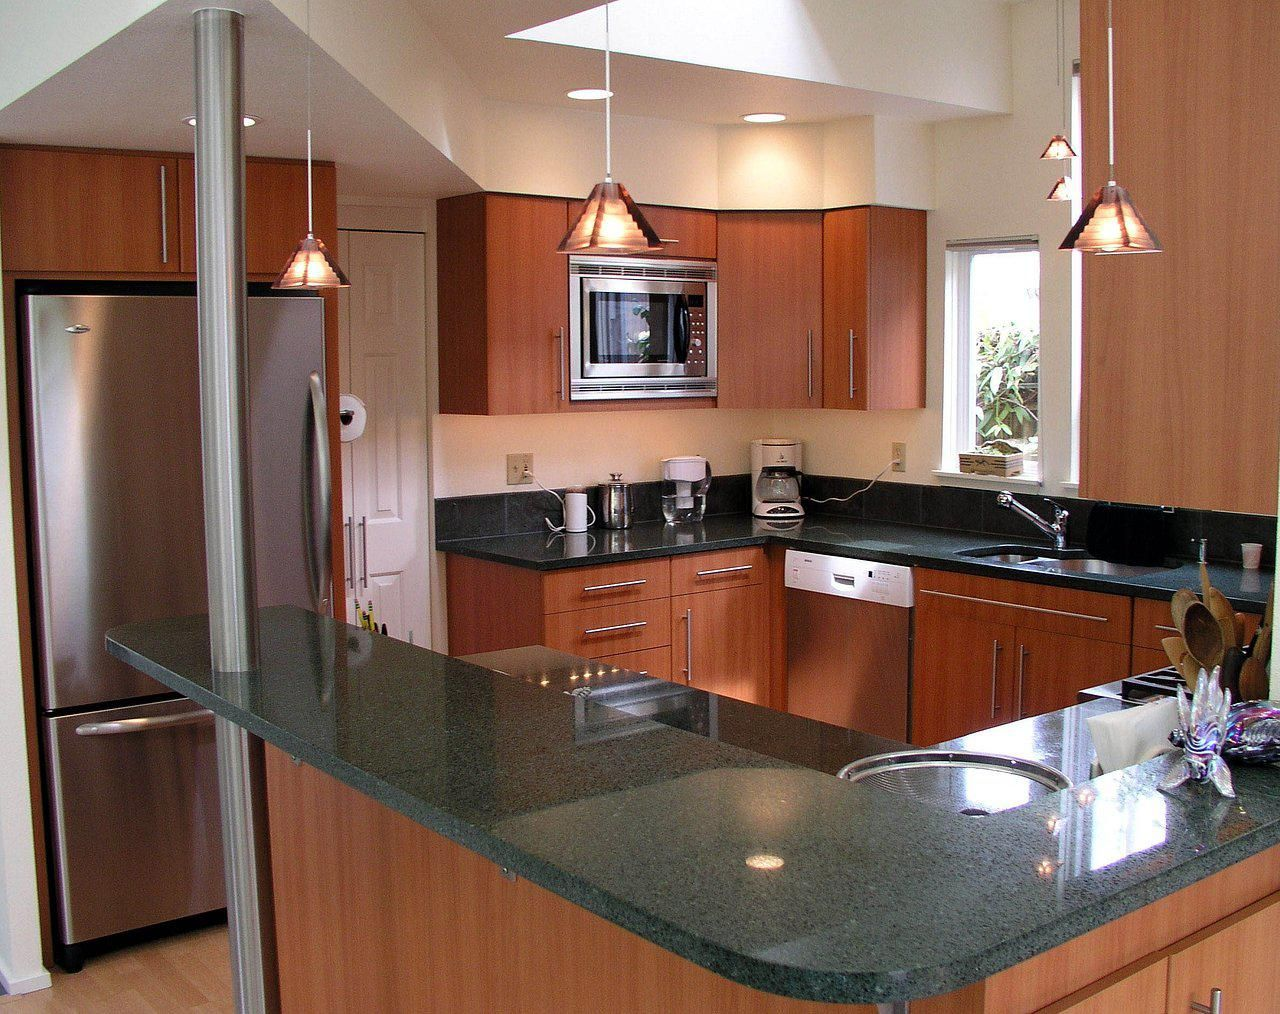 Restaining Kitchen Cabinets Ideas Painting Kitchen Cabinets Interior Kitchen Small Restaining Kitchen Cabinets